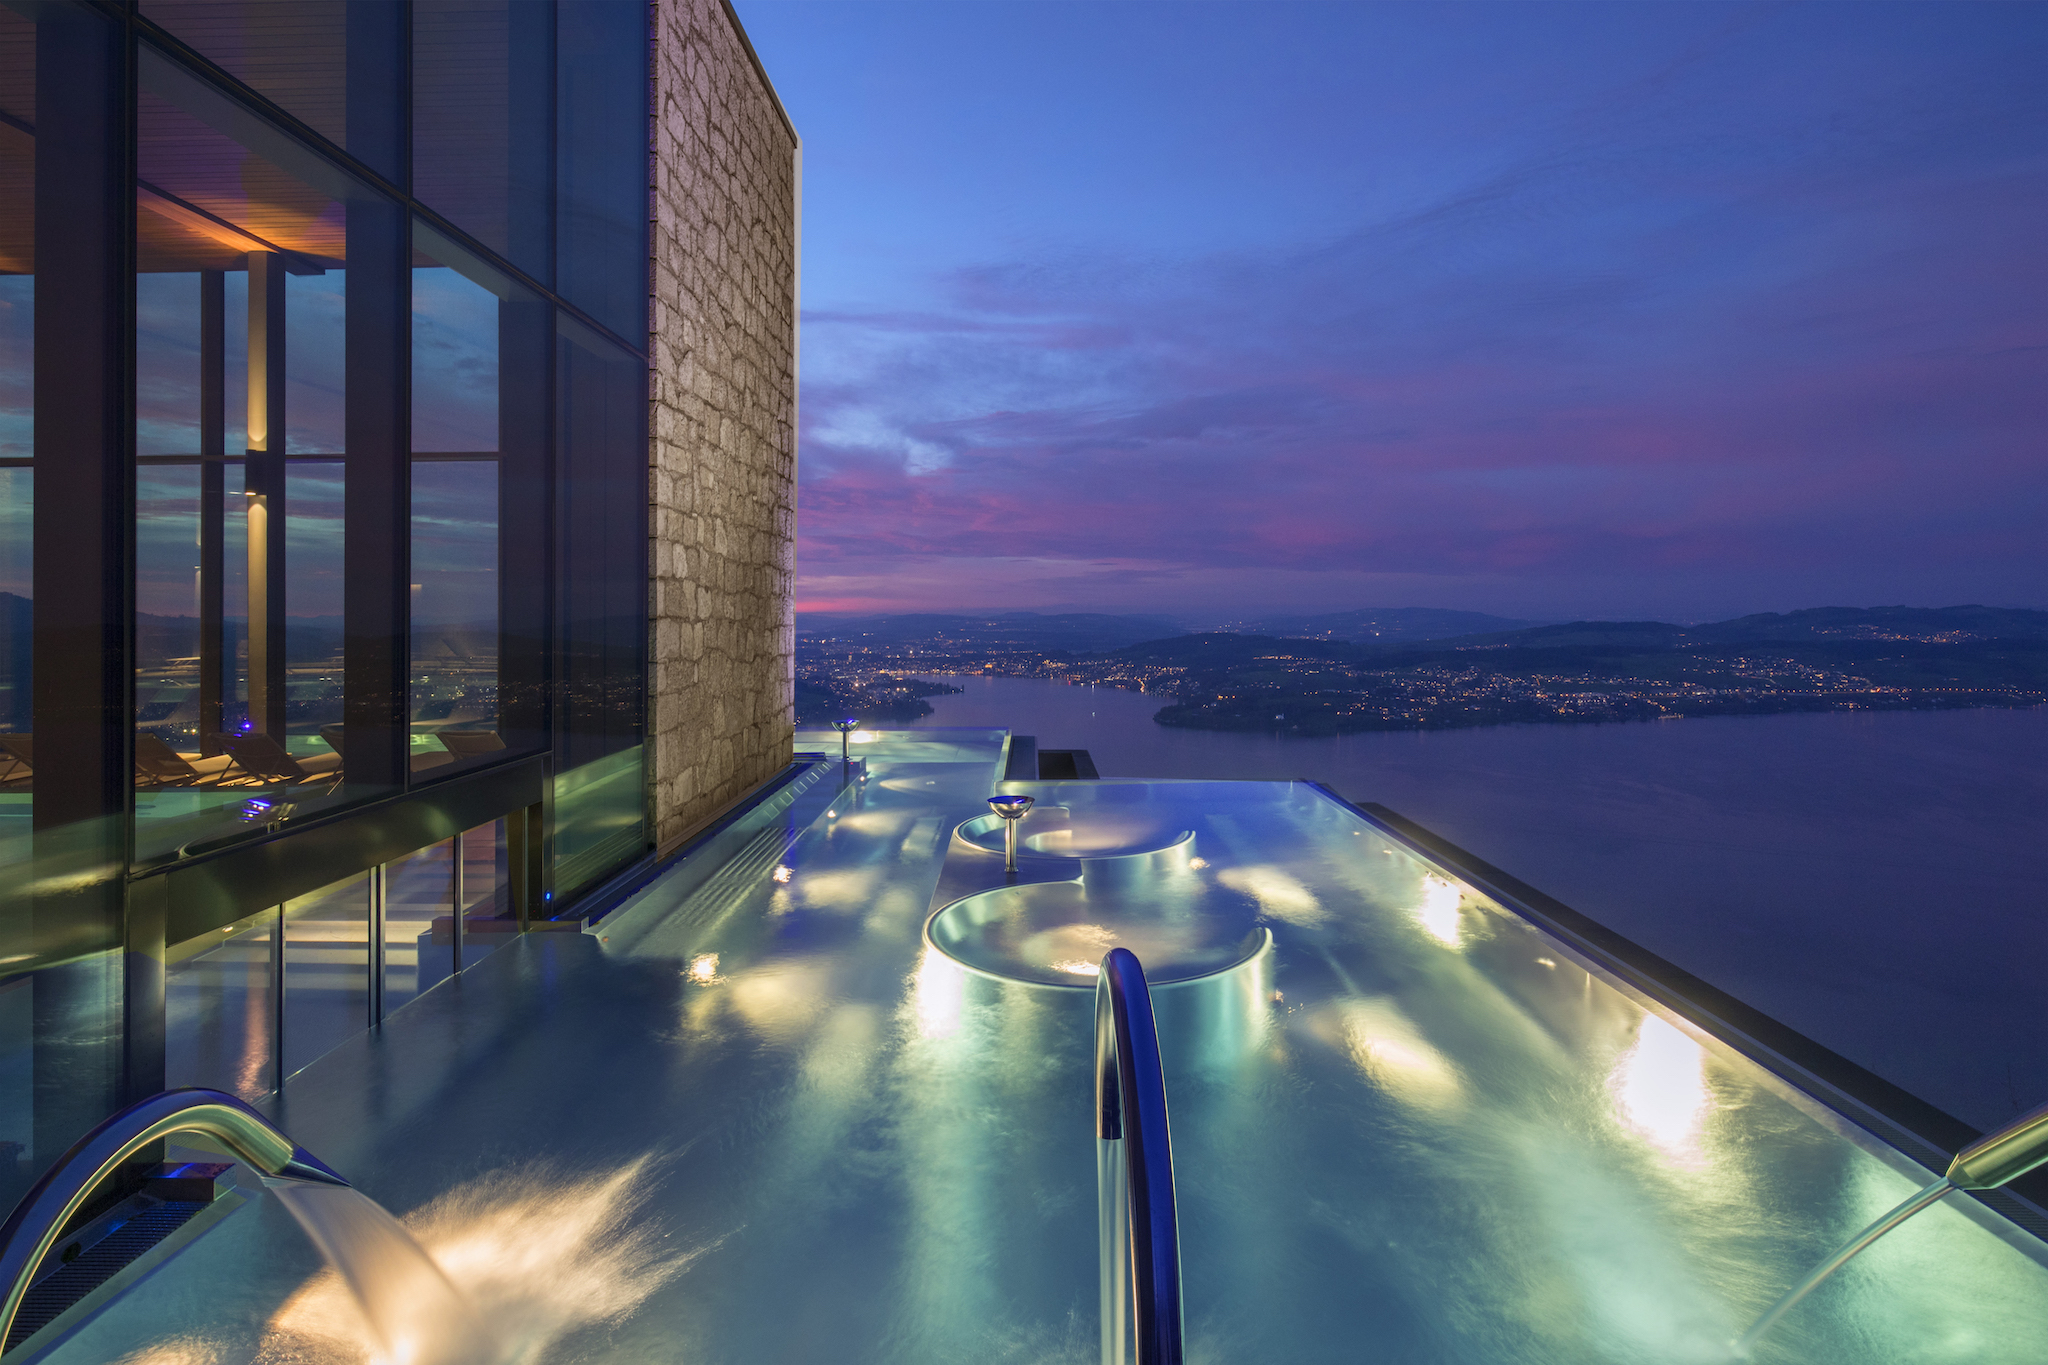 Bürgenstock Hotel & Alpine Spa, for Swiss staycation campaign